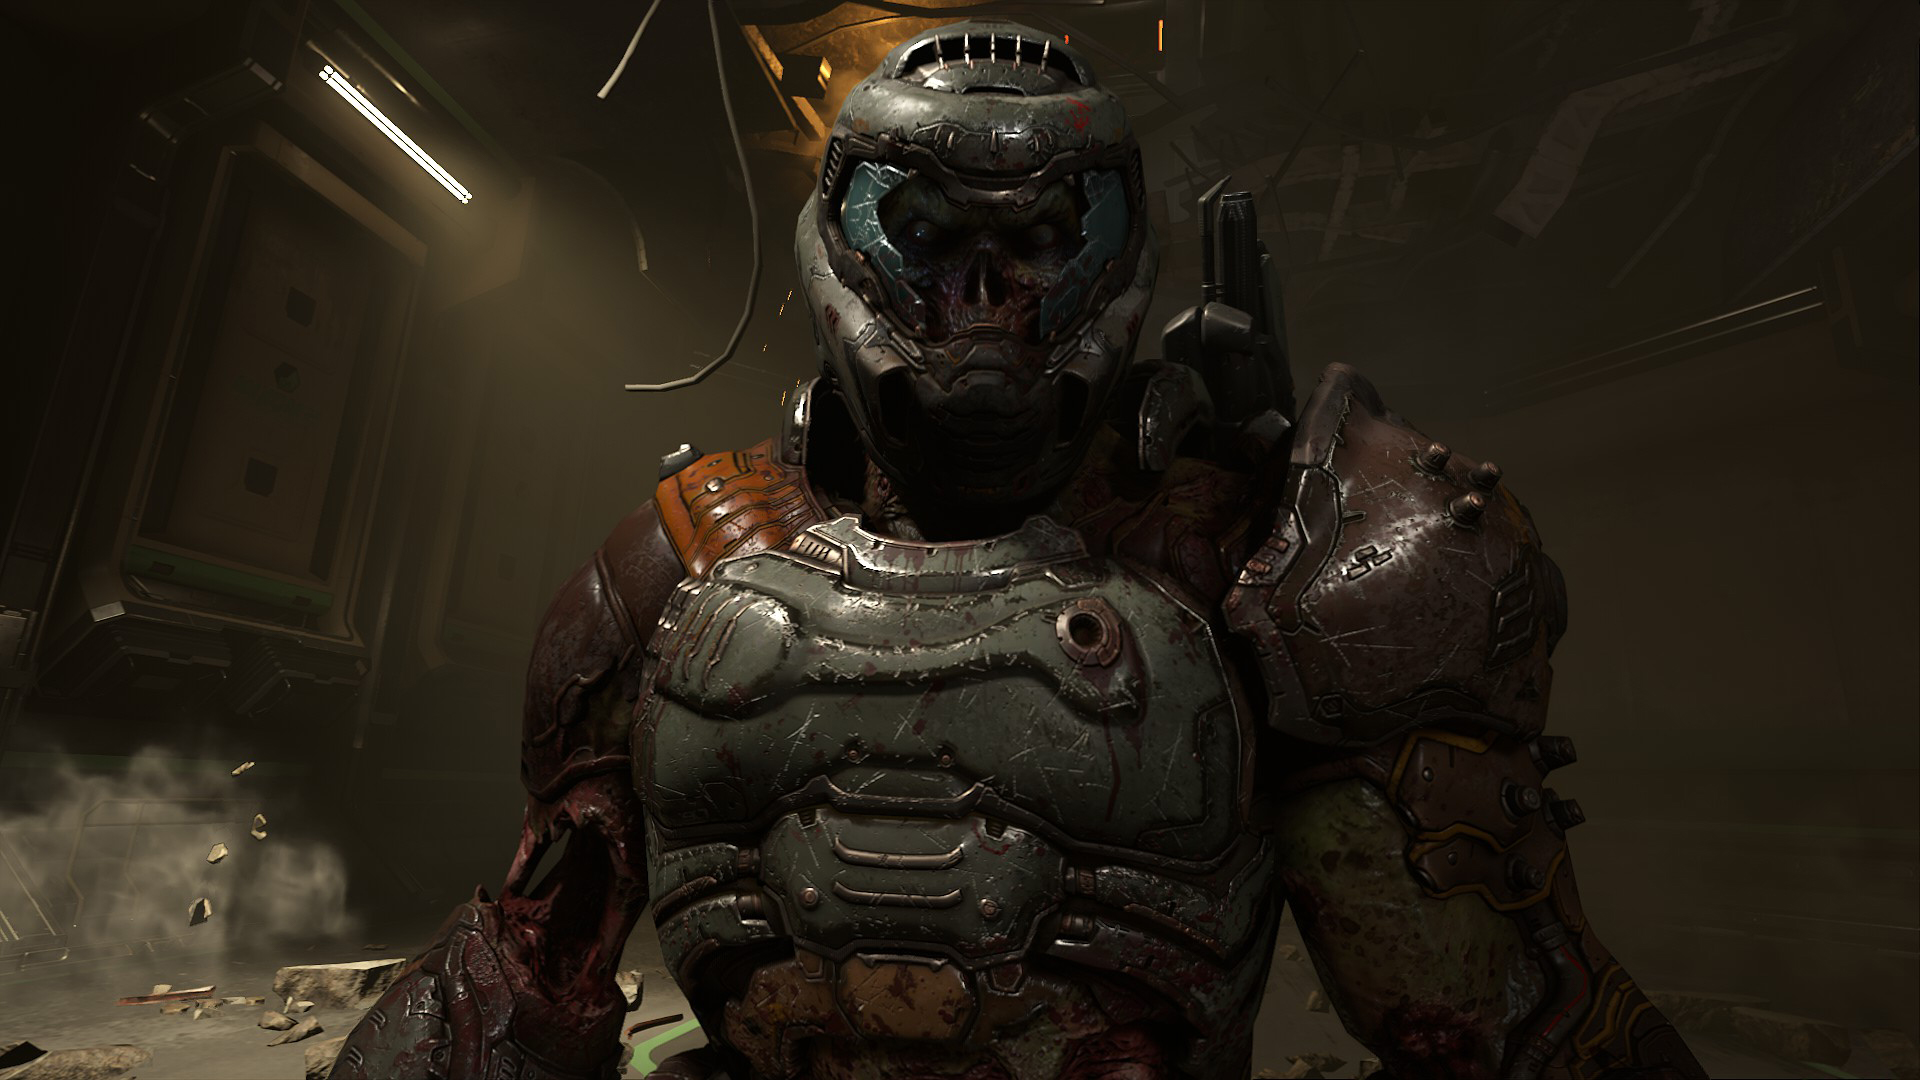 Doom Eternal is an excellent use case for HDMI 2.1 with its high frame rates and HDR support.